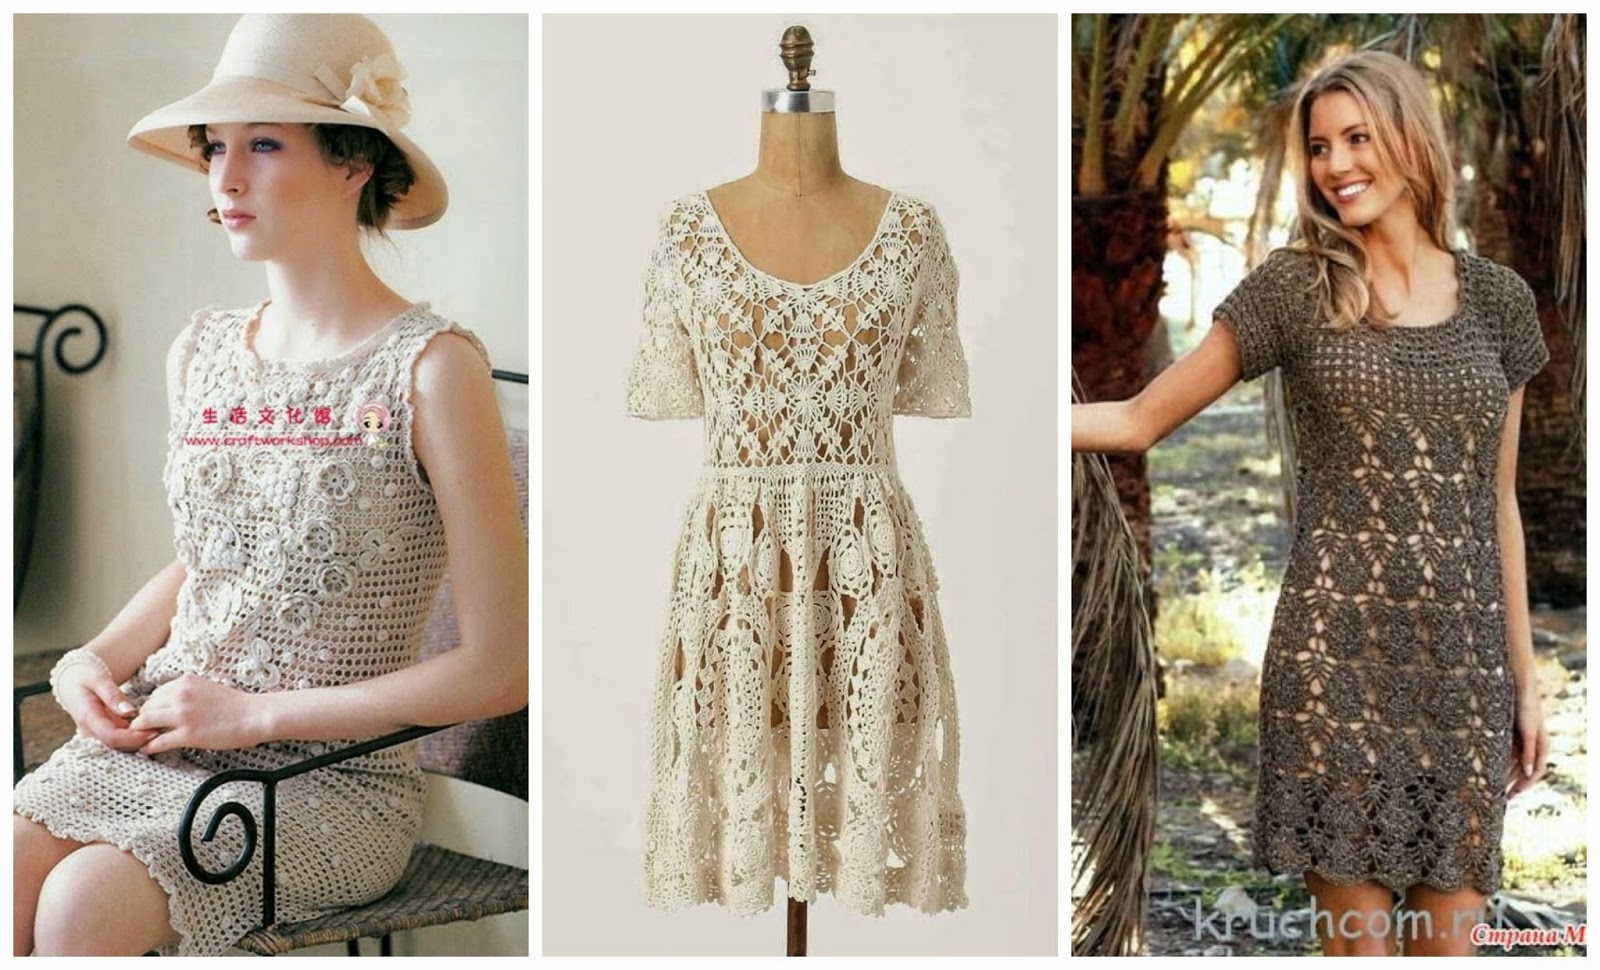 Crochet Stitches For Dresses : dress 1 dress 2 dress 3